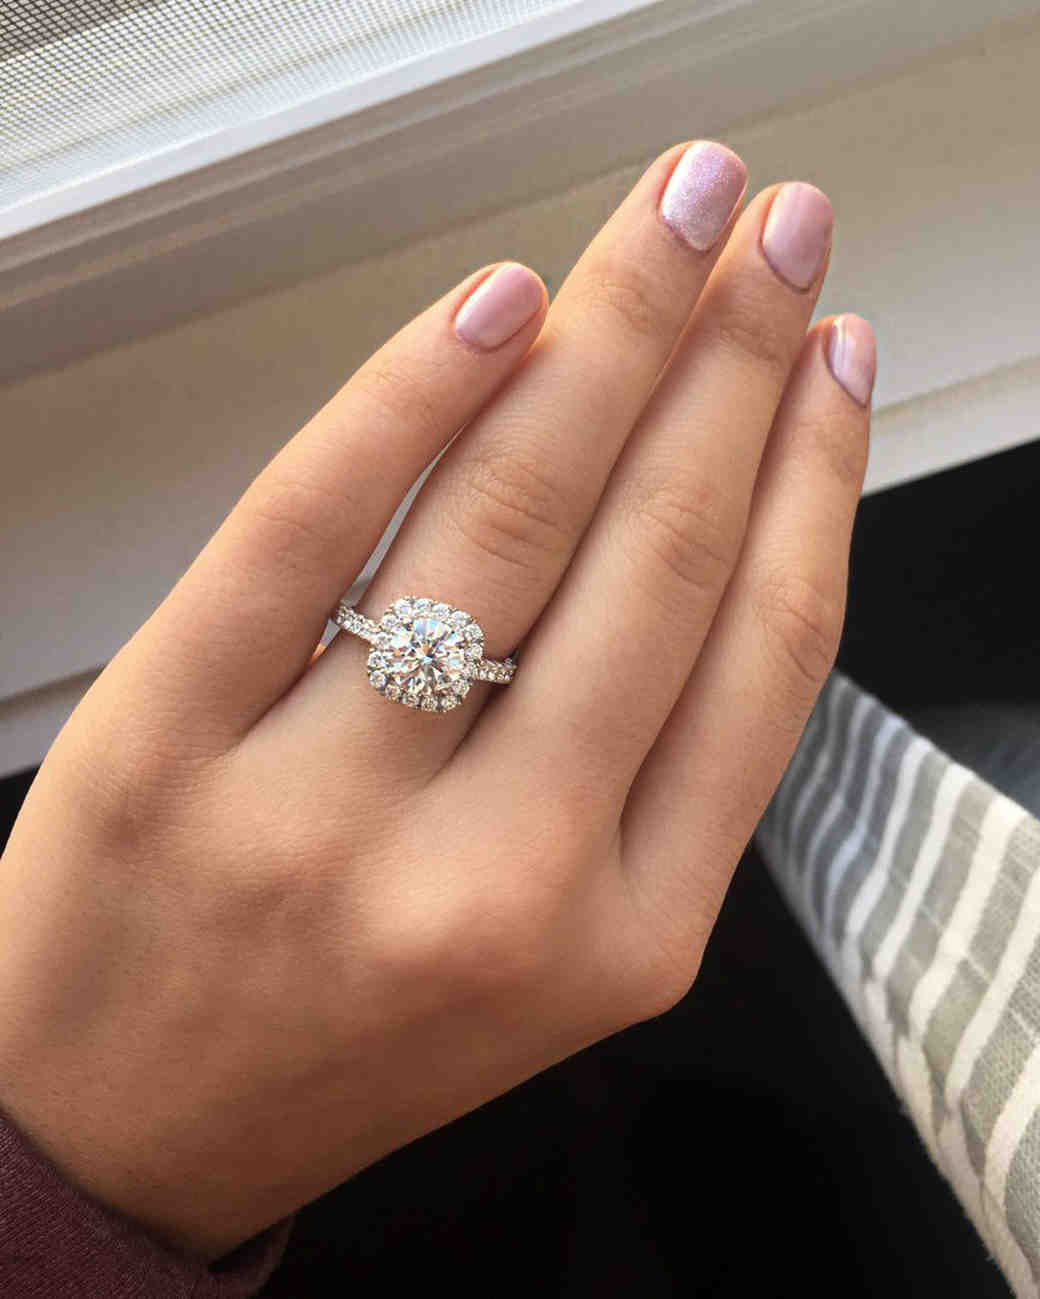 kelsea ballerini engagement ring